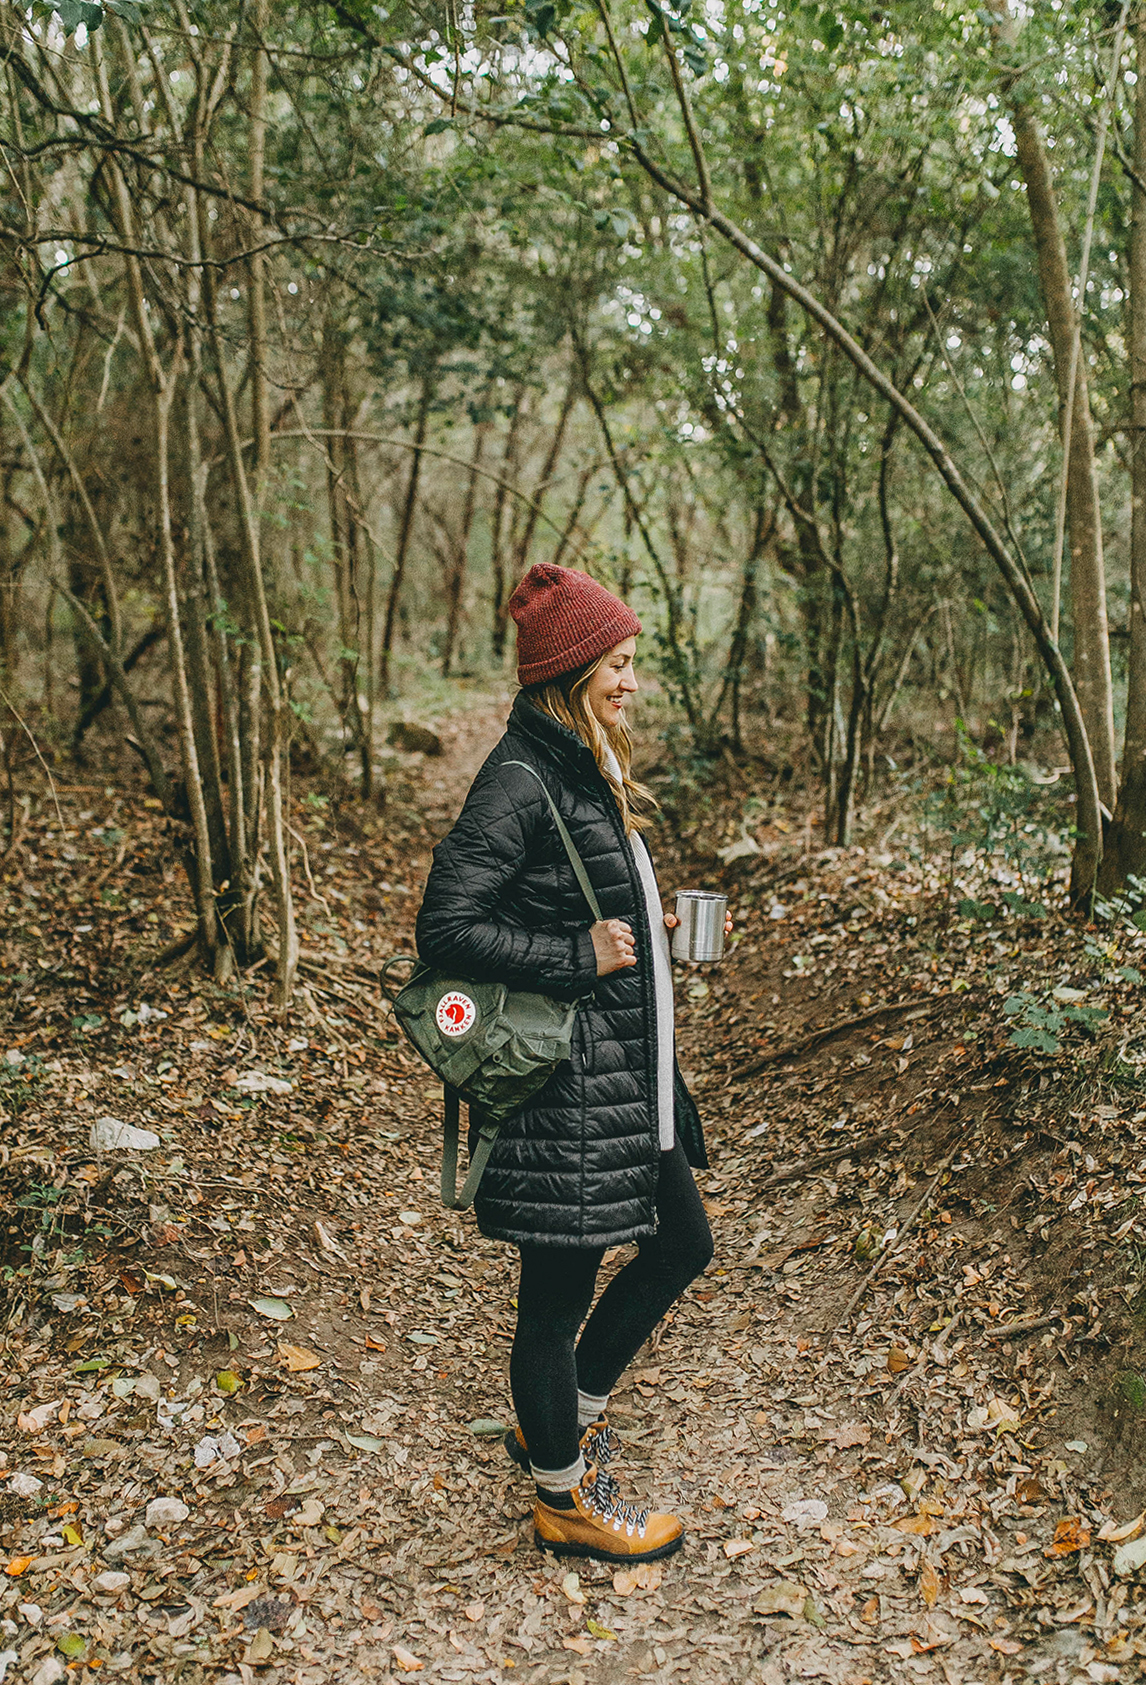 livvyland-blog-olivia-watson-austin-texas-fashion-lifestyle-blogger-greenbelt-fall-patagonia-radalie-parka-sorel-ainsley-boots-hiking-outfit-backcountry-3